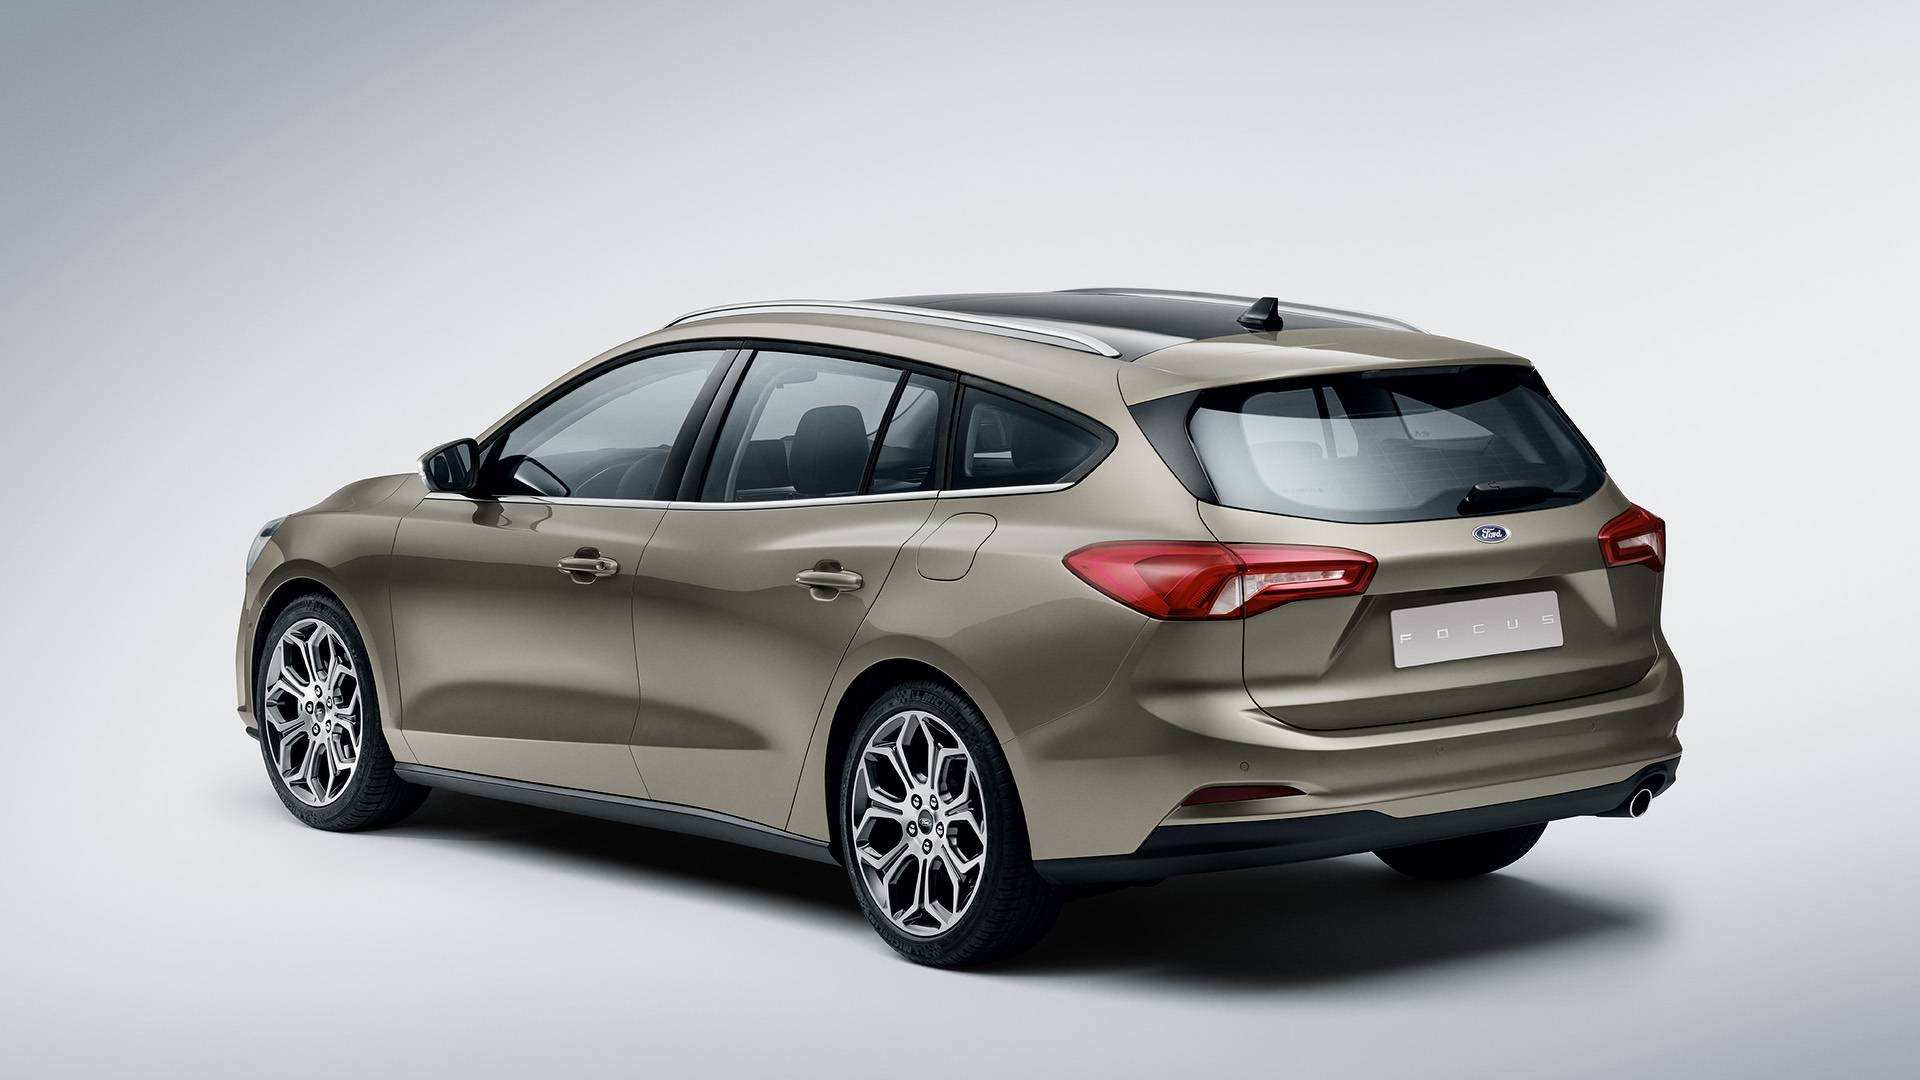 Ford Passenger Car Lineup to Consist of Only two Models in North America by 2020 - autoevolution